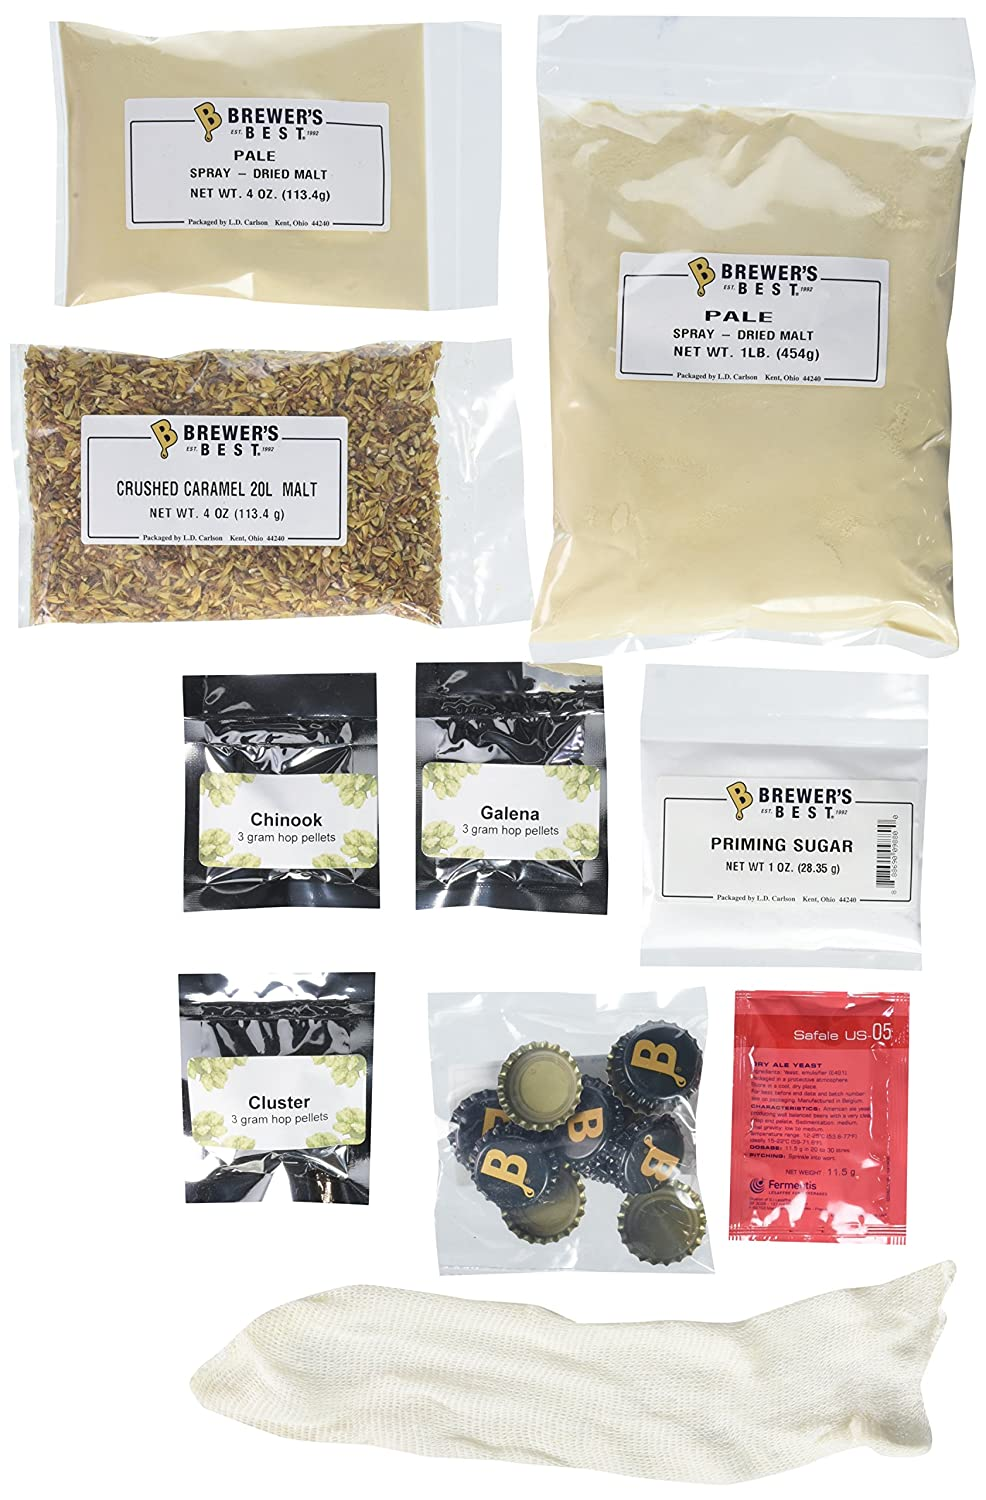 Home Brew Ohio American Ale Brewer's Best 1 gallon Home Brew Beer Ingredient Kit B01BUJNM22